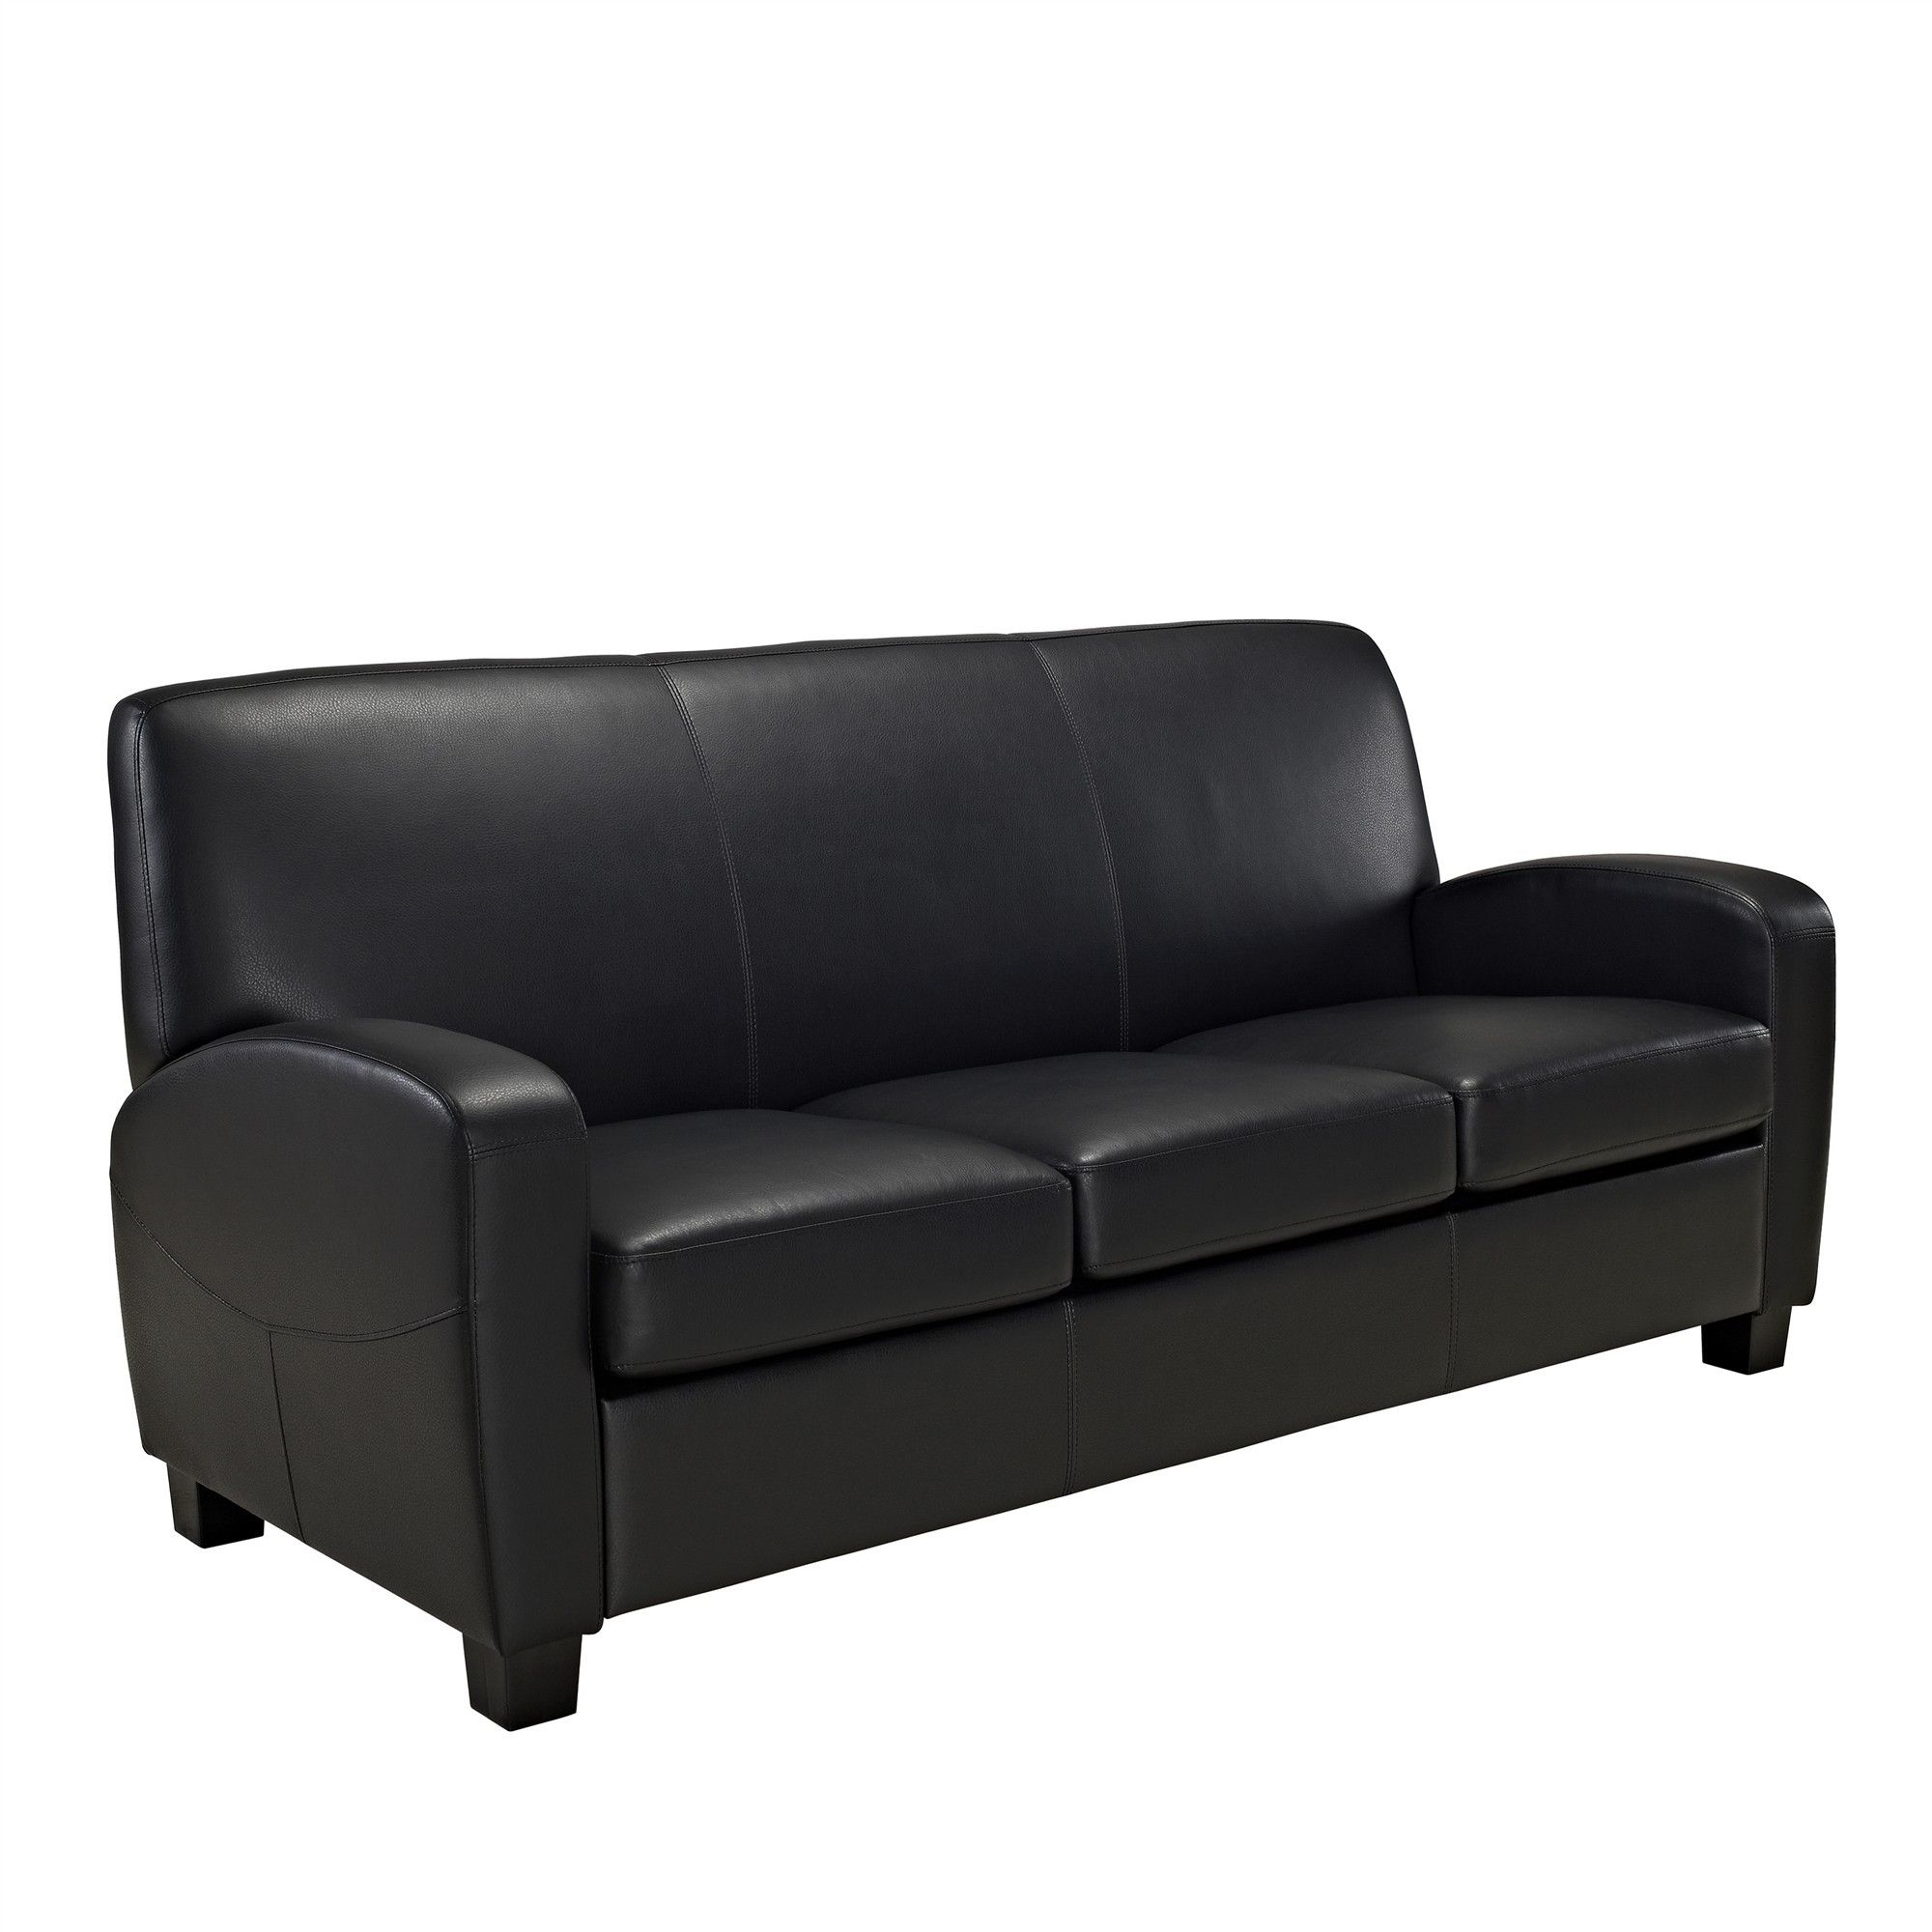 Dallas Faux Leather Sofa Black - Dorel Living in 2019 ...